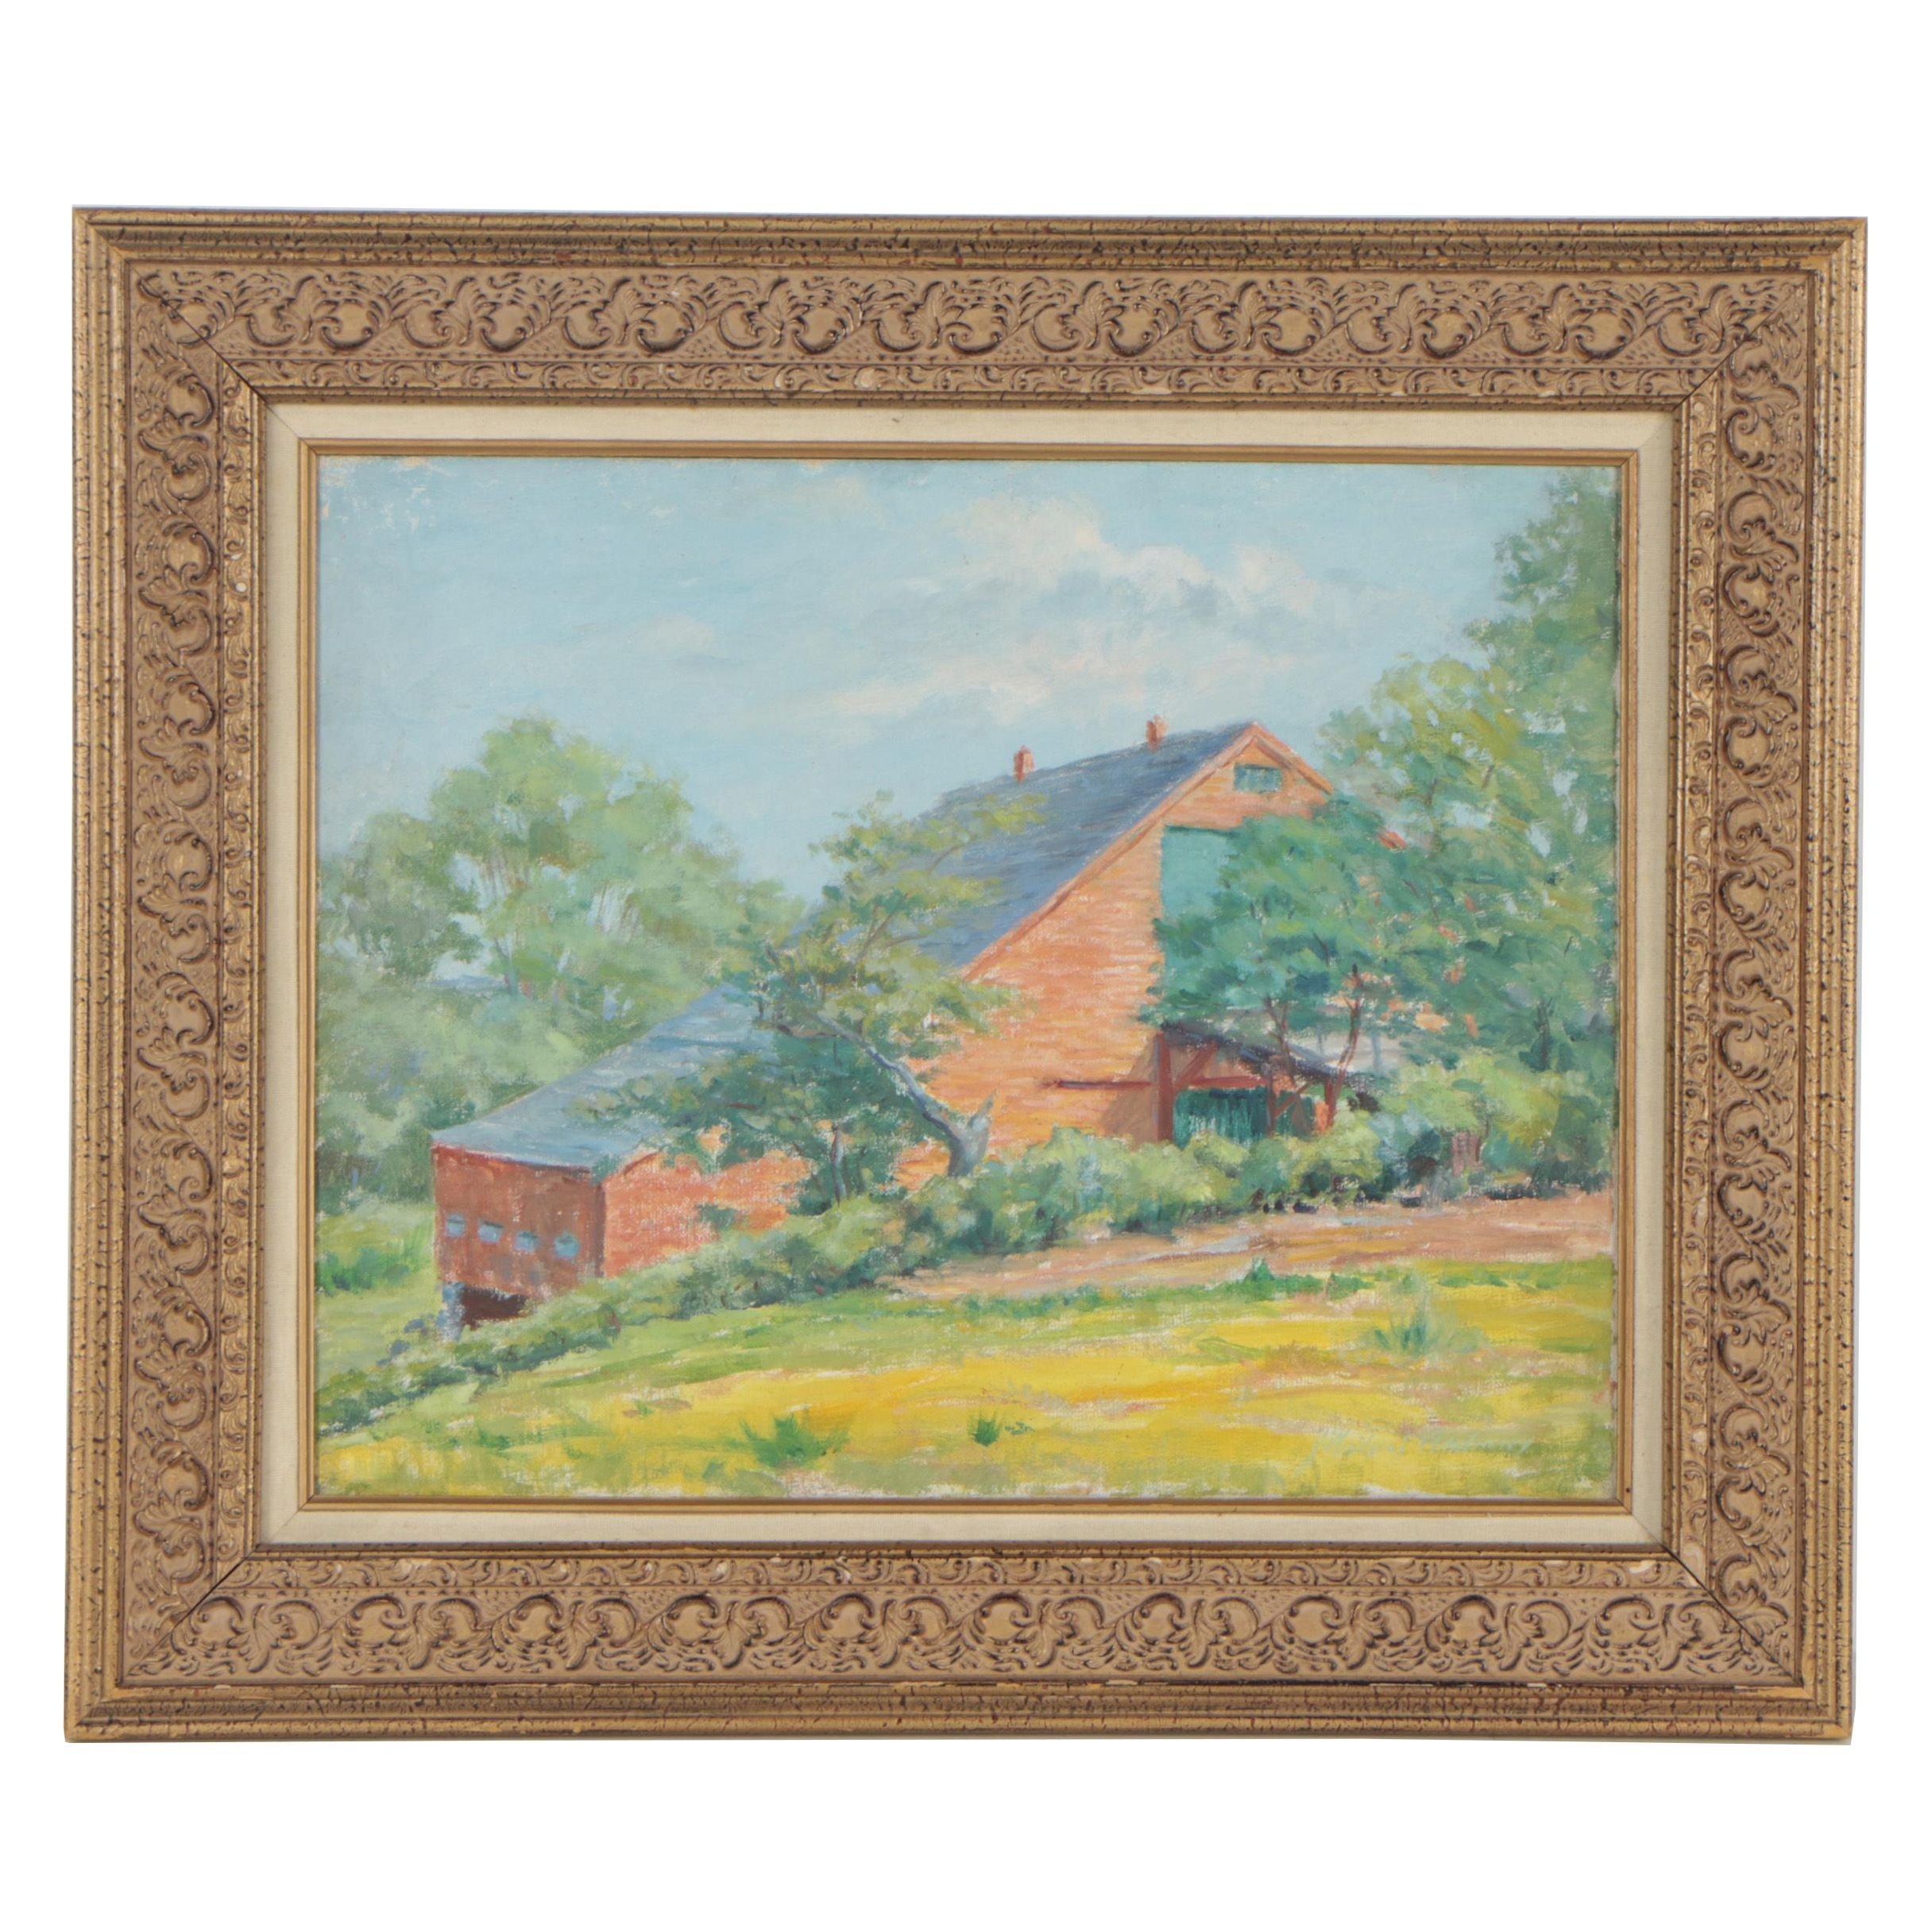 John Winthrop Andrews Oil Painting